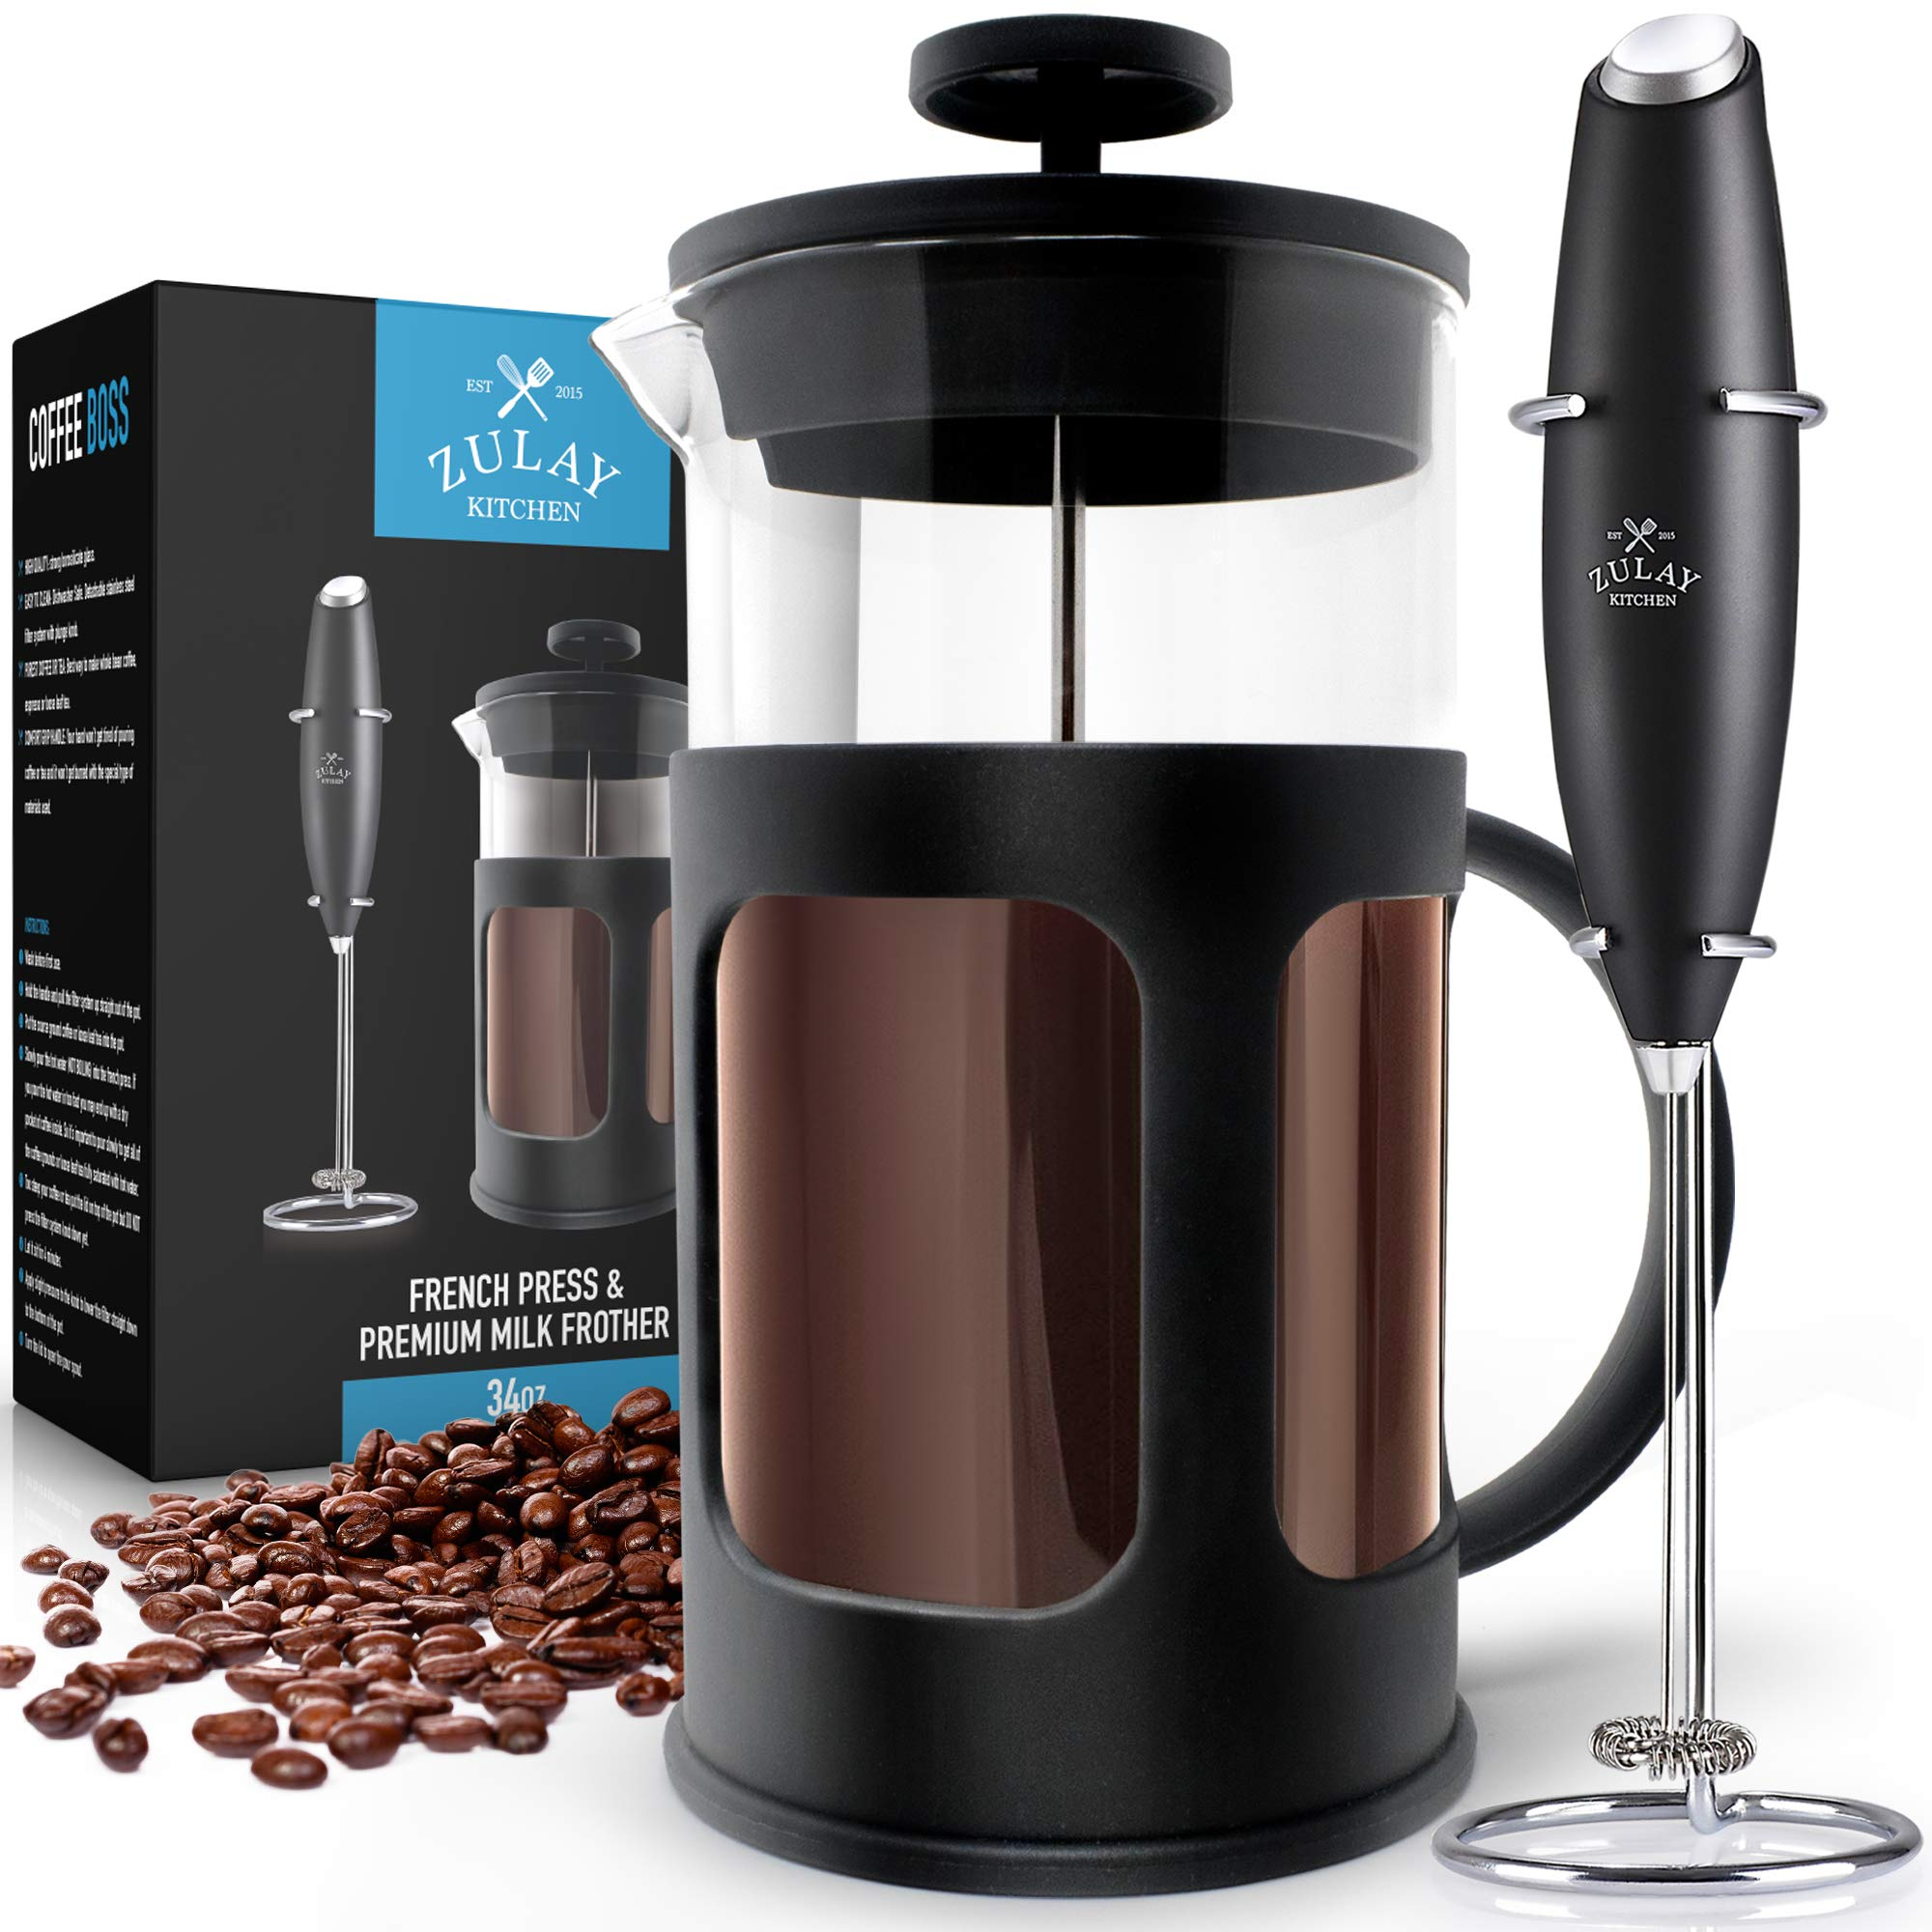 Zulay Premium French Press Coffee Pot and Milk Frother Set - (8 Cups, 34 oz) Coffee Press Glass Carafe with Powerful Double-Mesh Stainless Steel Filter System for Filtering Out Fine Coffee Grounds by Zulay Kitchen